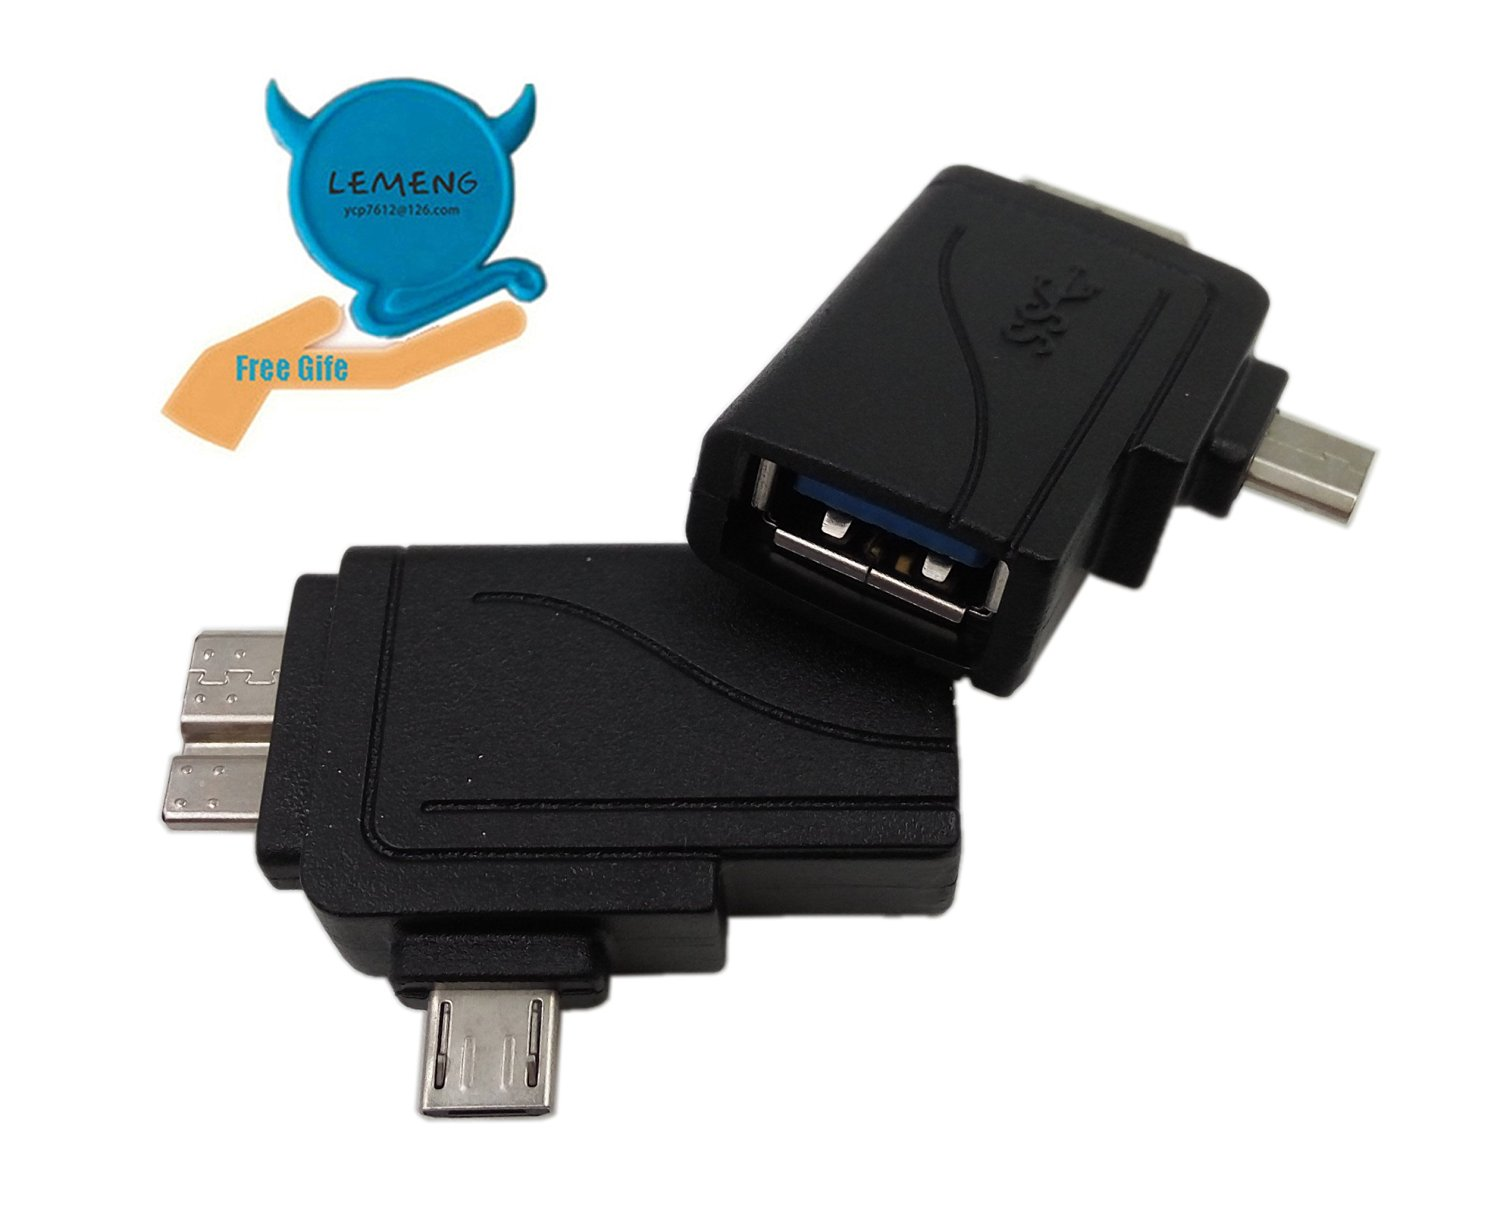 LEMENG 2-in-1 Micro USB 3.0 & 2.0 OTG Adapter, Micro USB Male to USB 3.0 Female A Converter(Black)